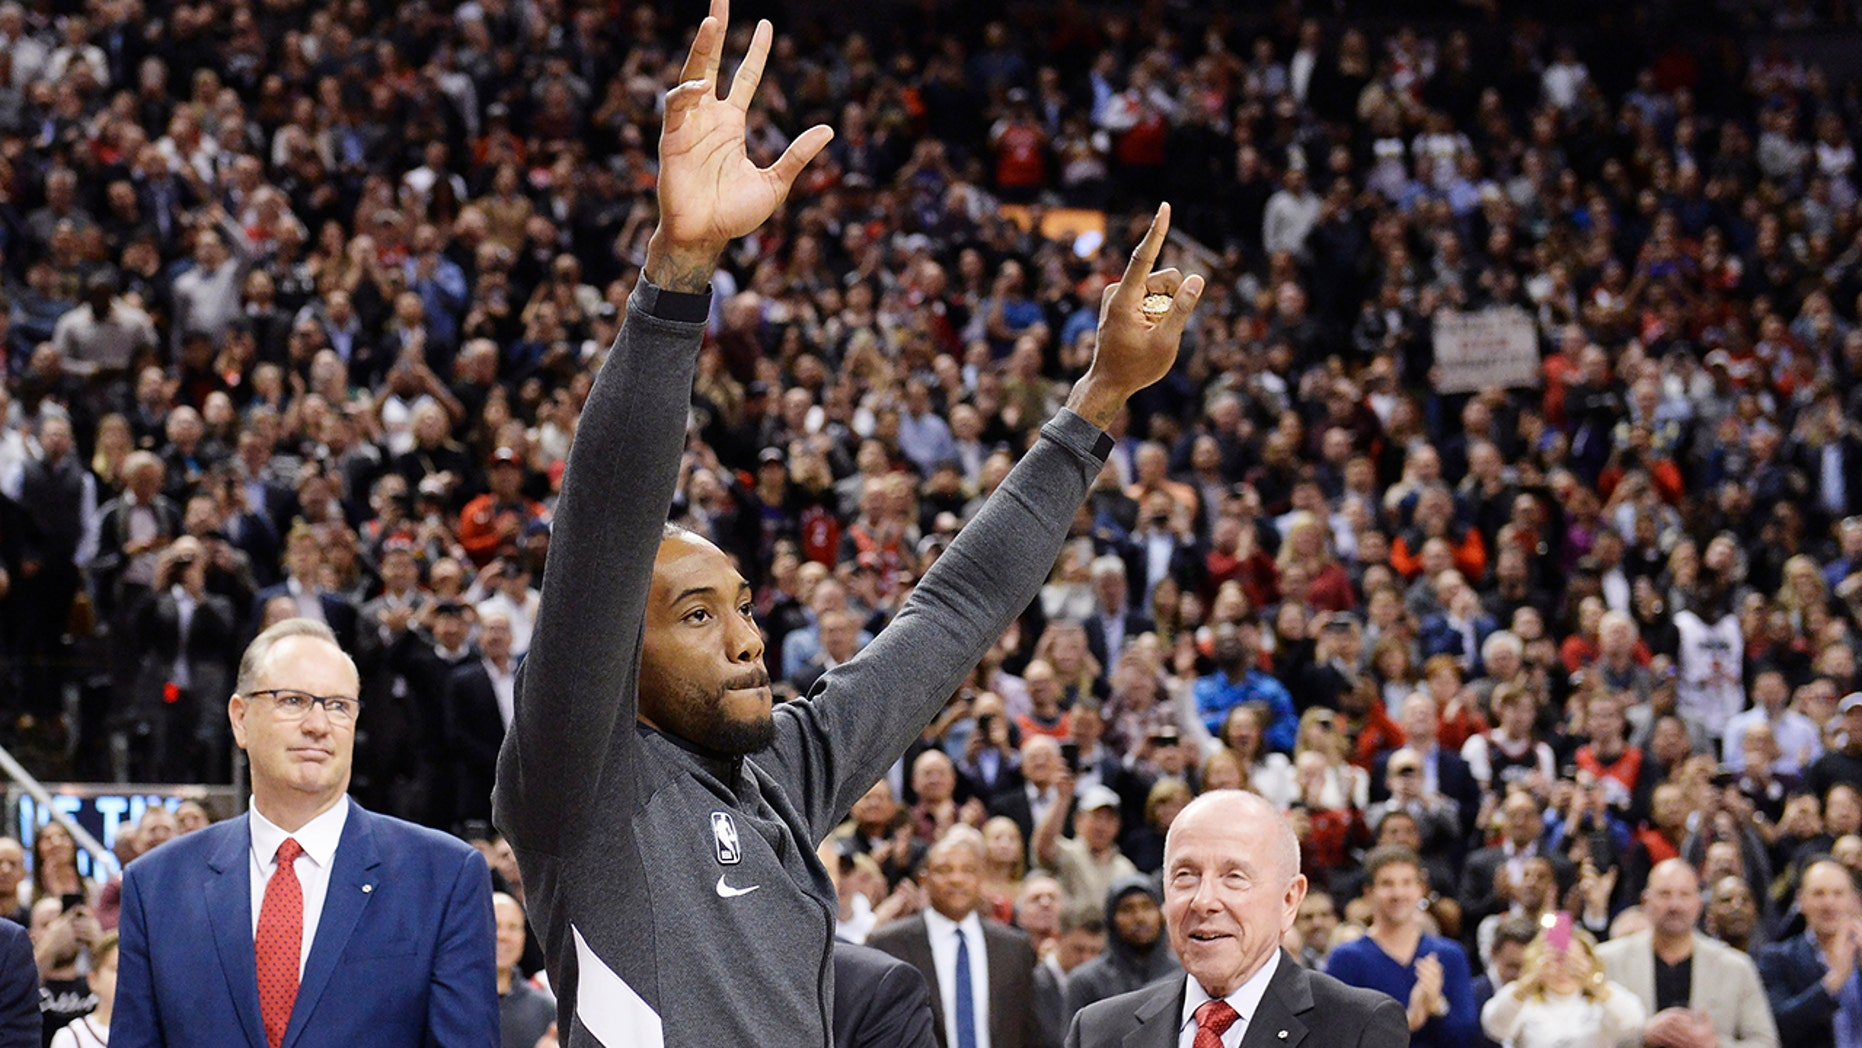 Former Toronto Raptors and now Los Angeles Clippers forward Kawhi Leonard salutes the crowd as he receives his 2019 NBA championship ring prior to an NBA basketball game, Wednesday, Dec. 11, 2019, in Toronto. (Nathan Denette/The Canadian Press via AP)